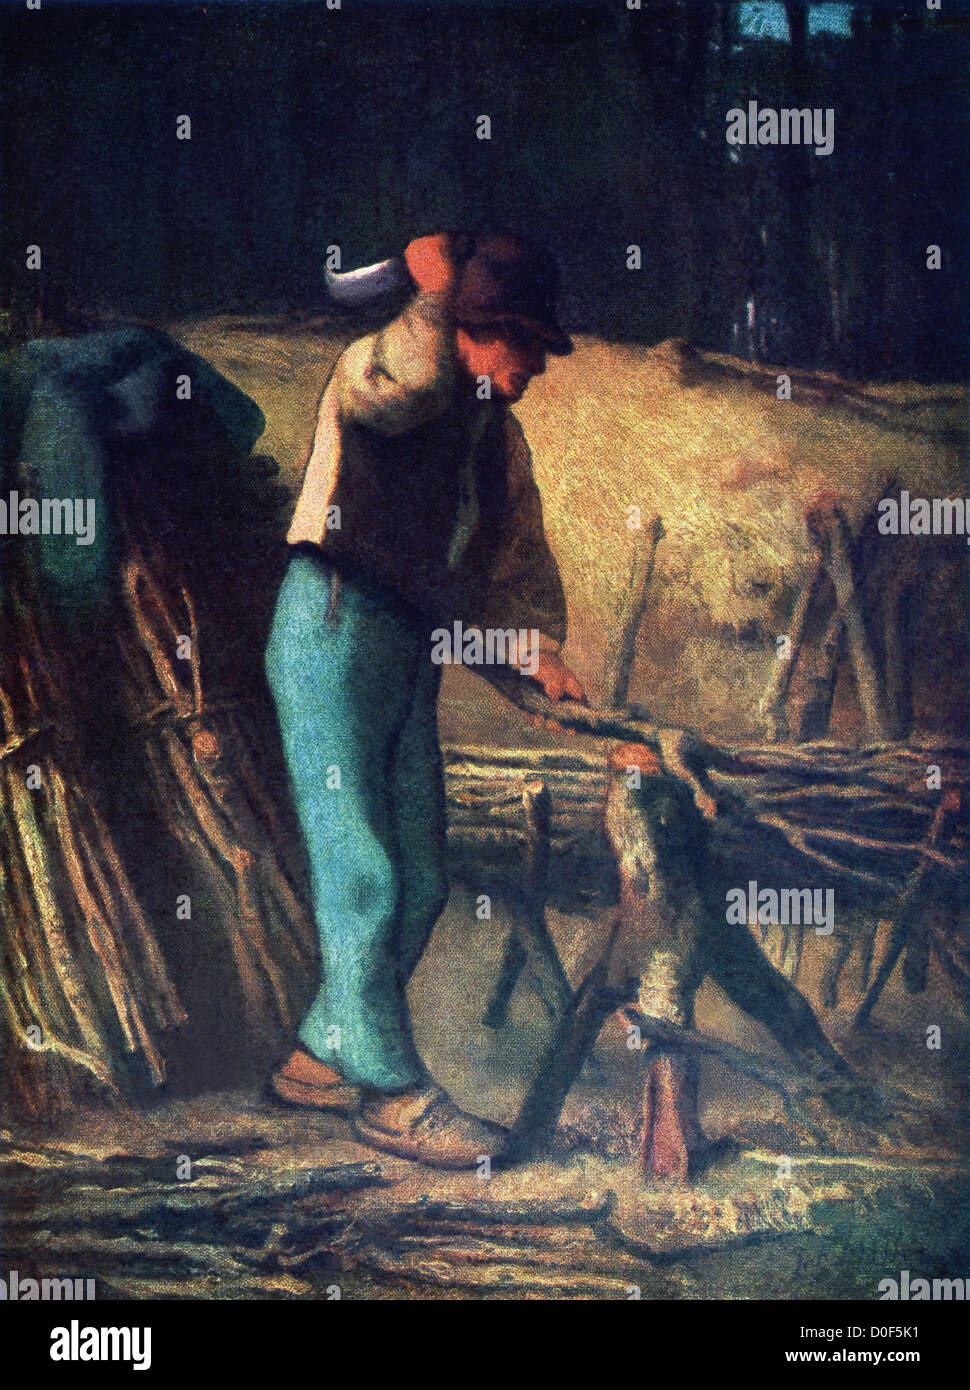 The Wood-Cutter, by Millet, on a warm sunny day, full of life and vigor, brings before us the joyous side of peasant - Stock Image